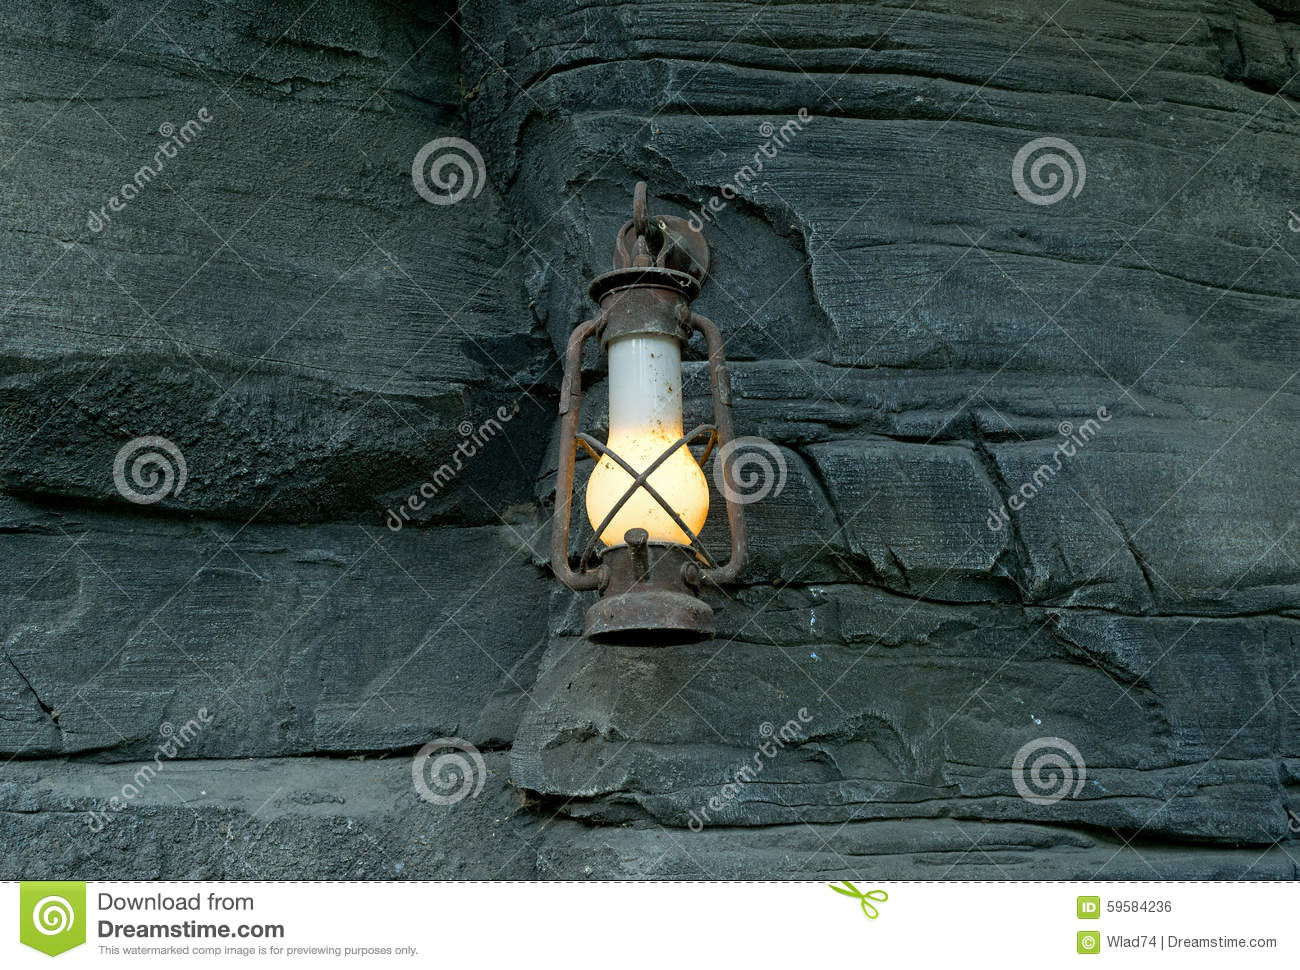 Oil lamp in the old mine stock photo  Image of beam, mine